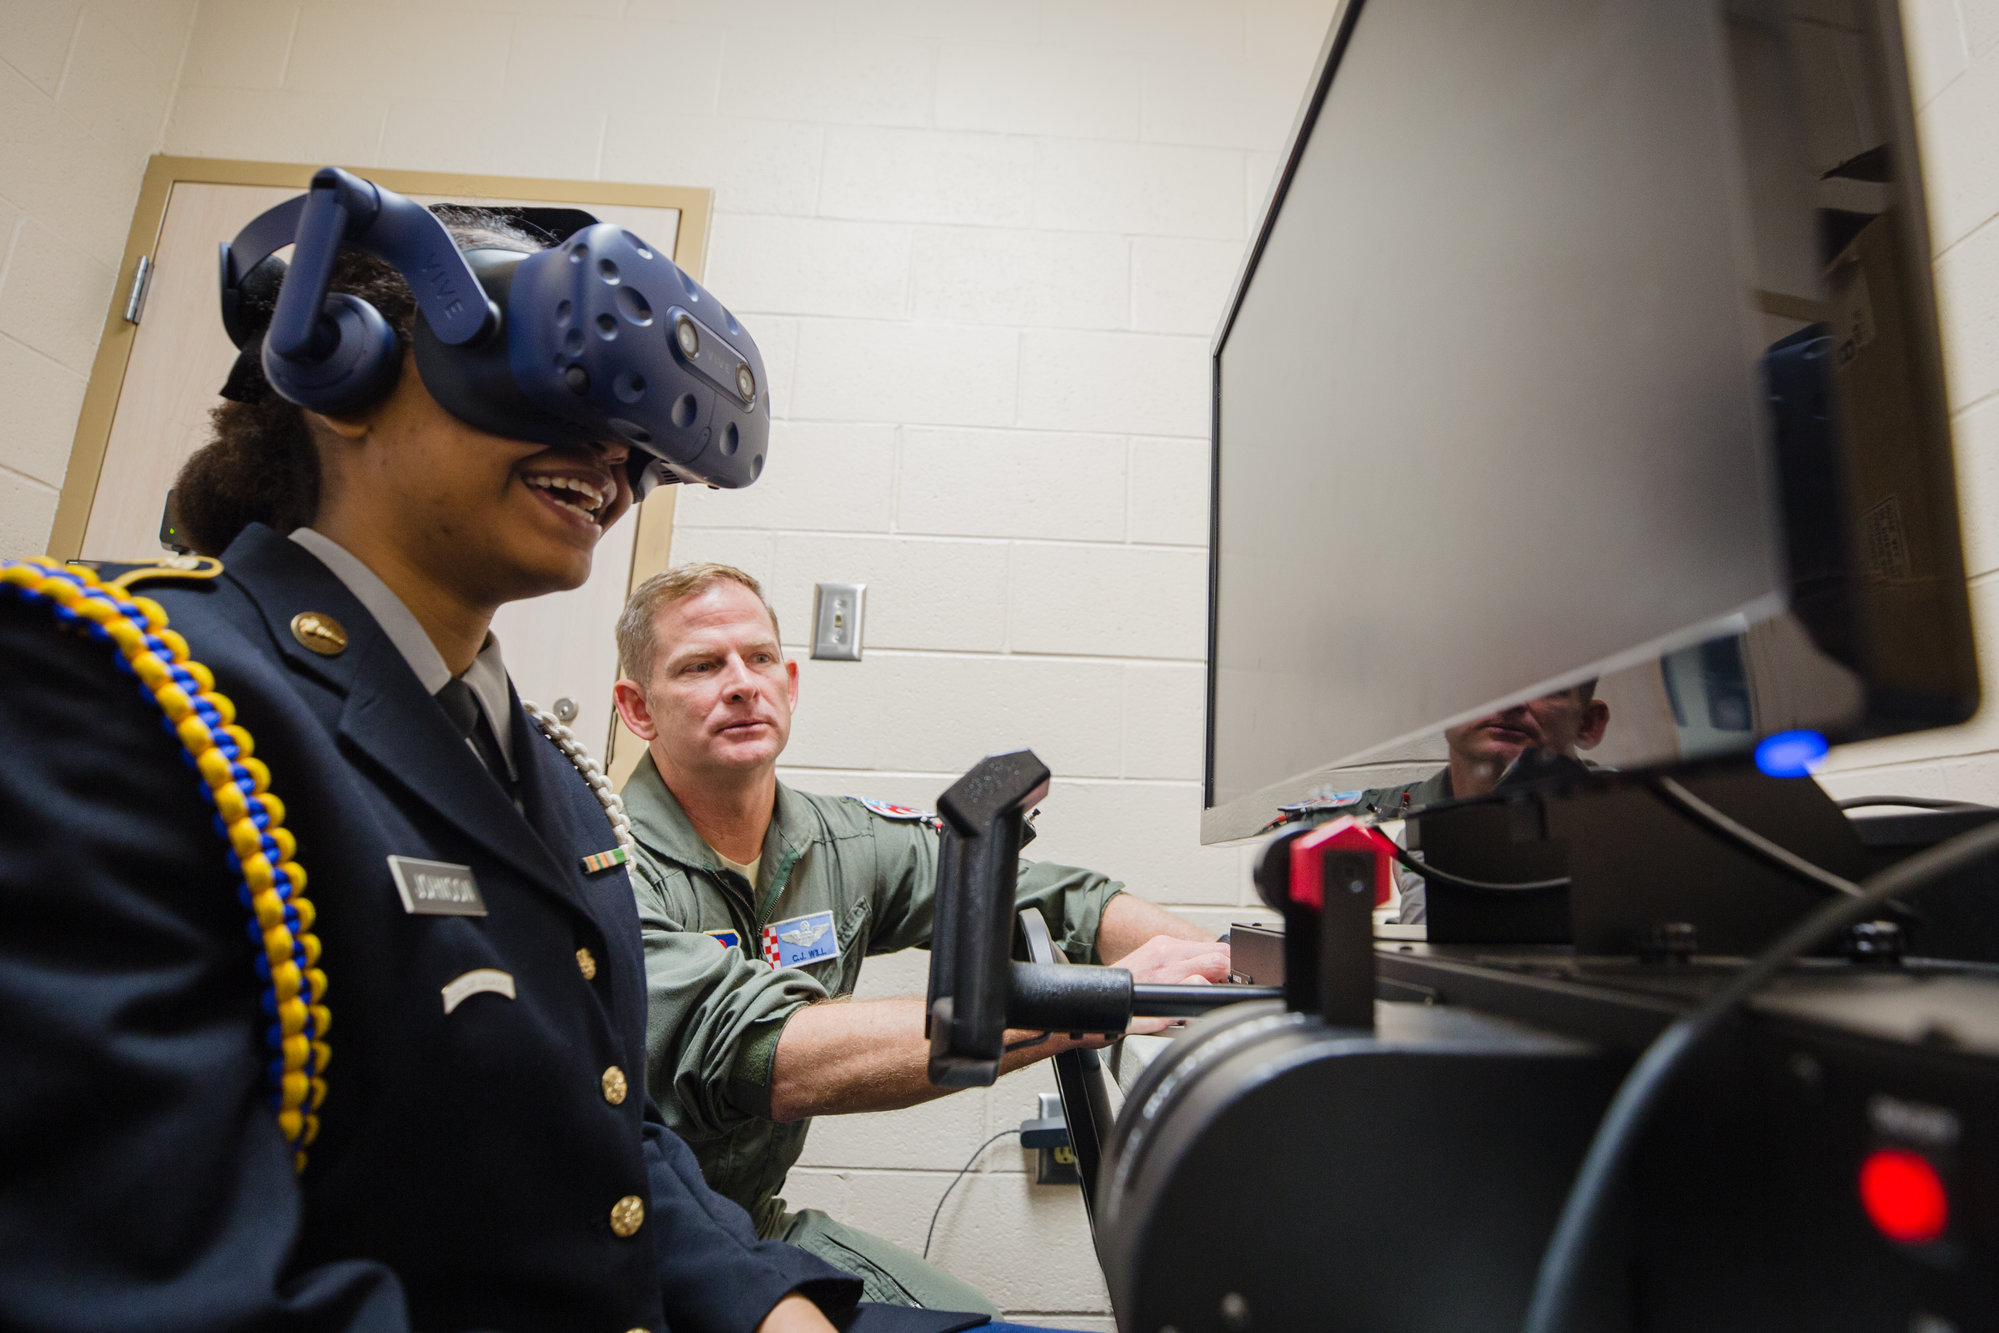 Ja'Nya Johnson uses a flight simulator as Col. Christopher J. Will, commander, 765th Detachment, Air Force Reserve Officer Training Corps, looks on. Will spoke during a program at Scott's Branch High School on Wednesday to encourage students to look into working in the aviation field after they graduate.